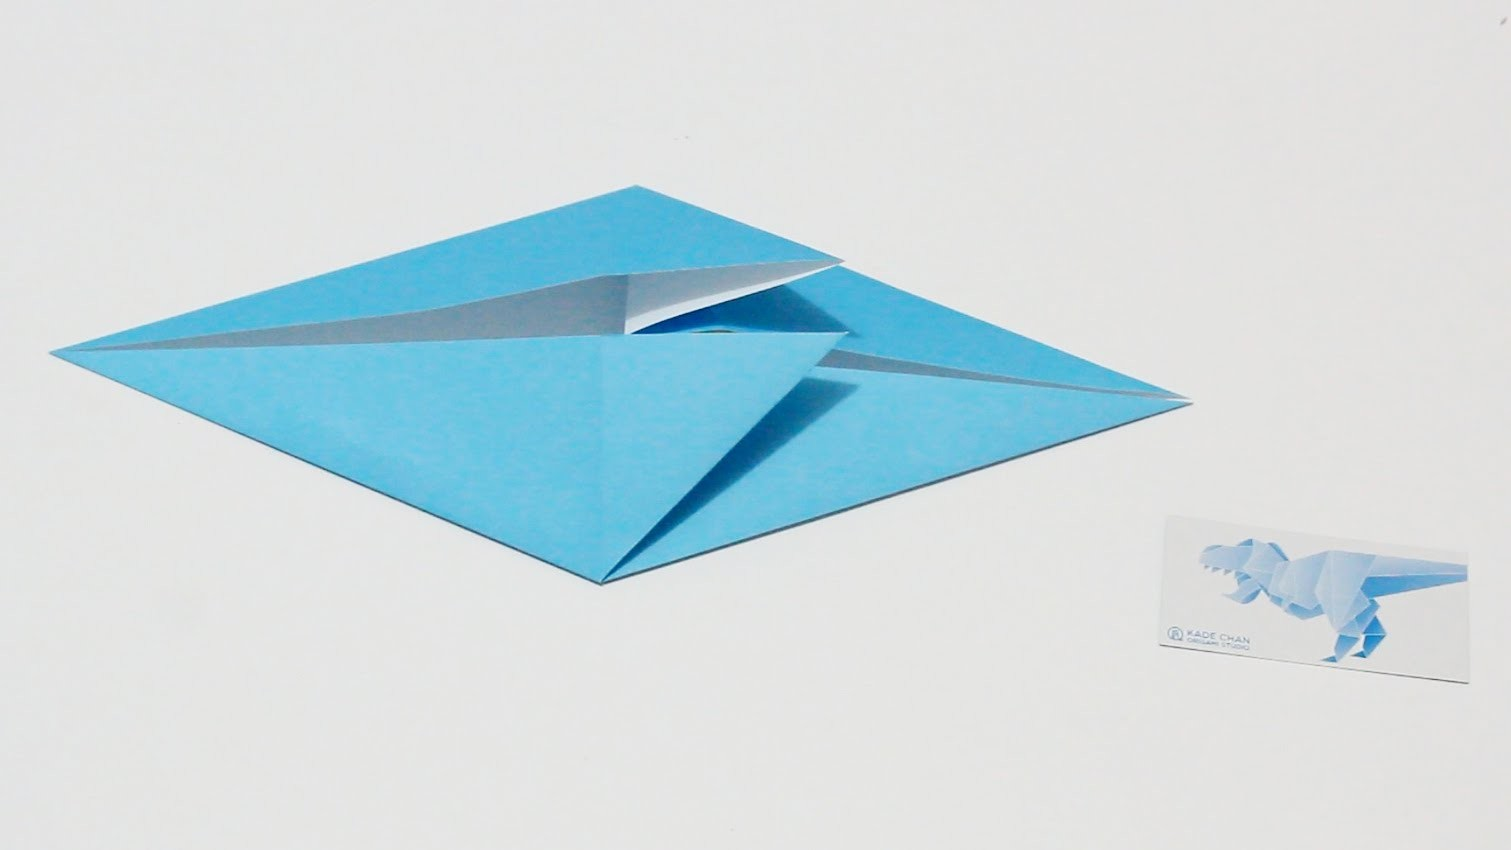 Origami Basics 13 : How to fold Fish Base 摺紙基本技巧 13 : 魚基本形